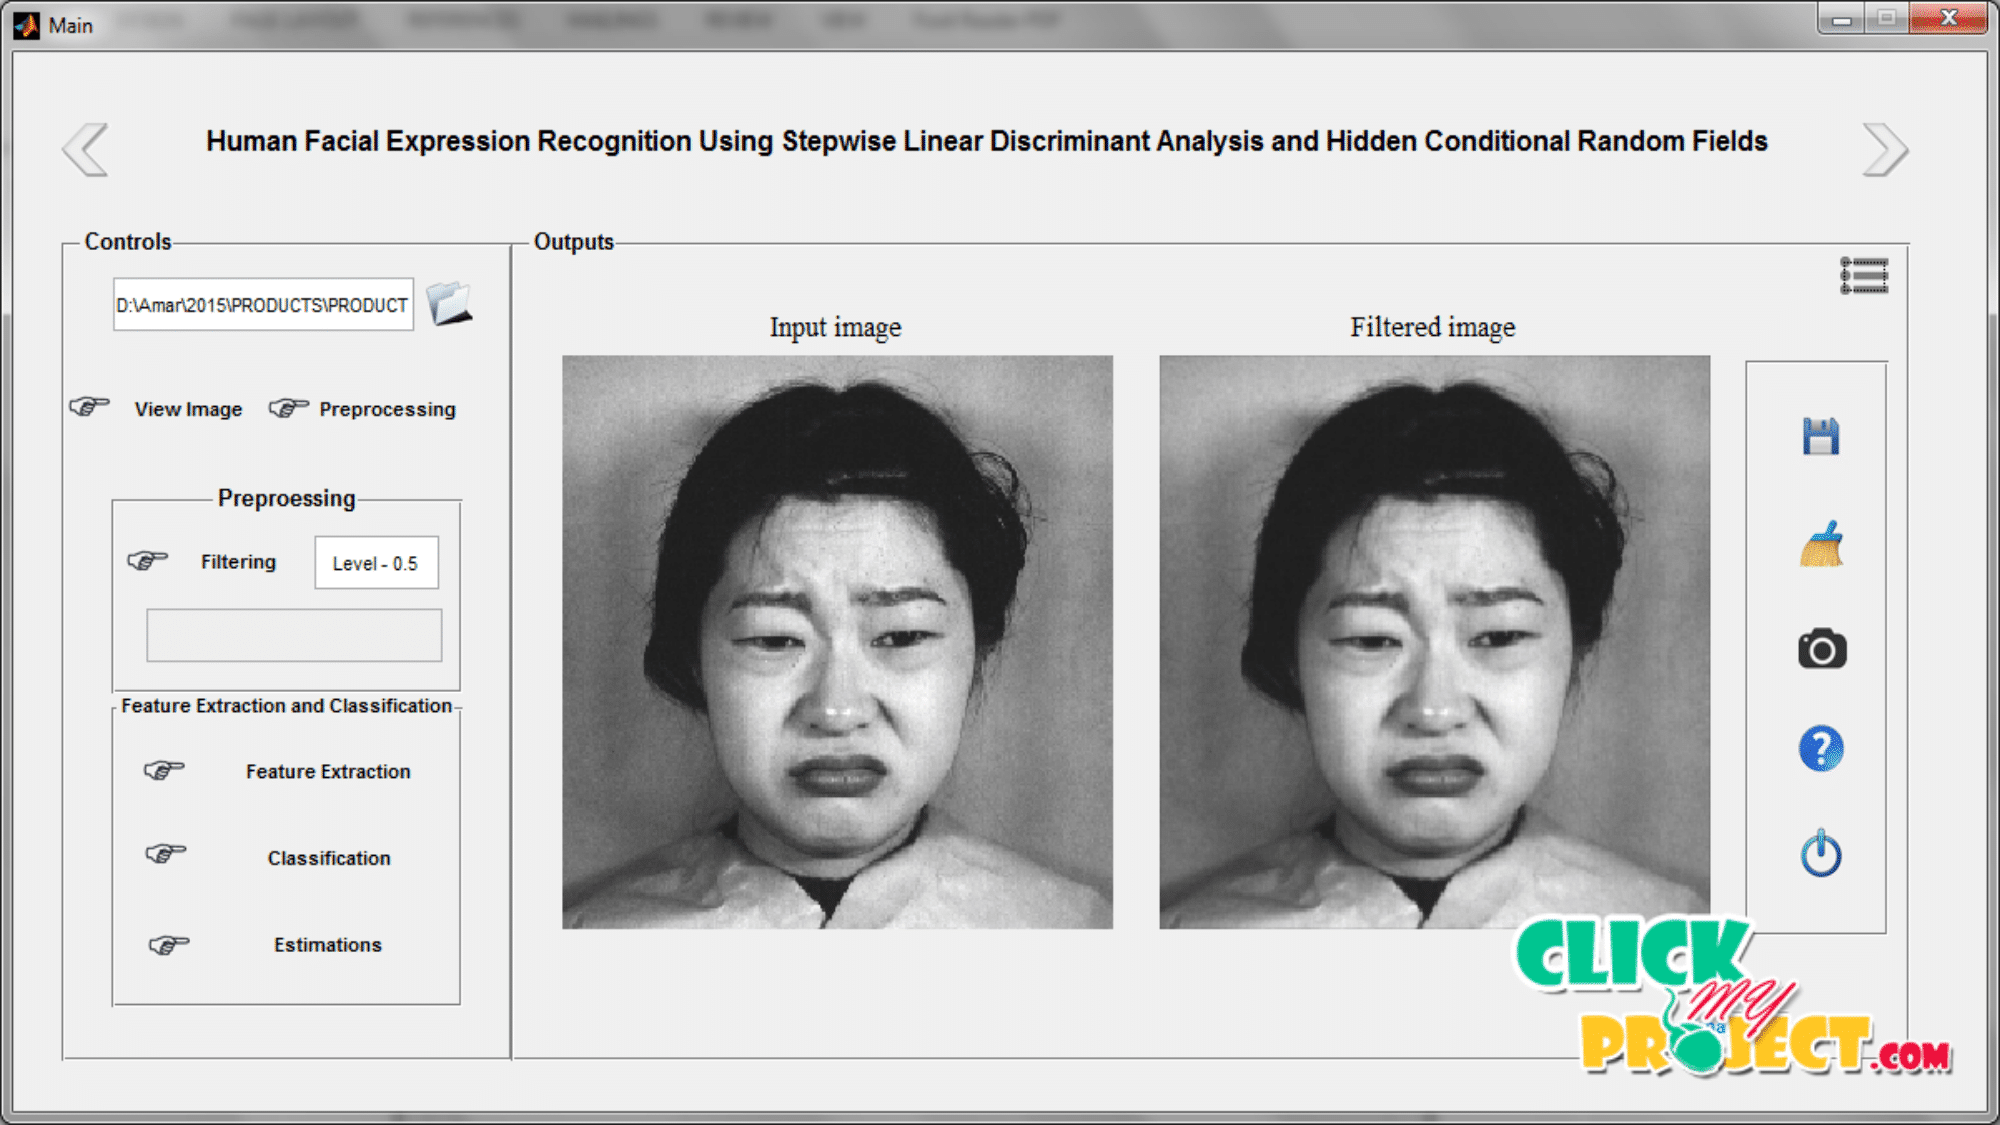 Human Facial Expression Recognition Using Stepwise Linear Discriminant Analysis and Hidden Conditional Random Fields